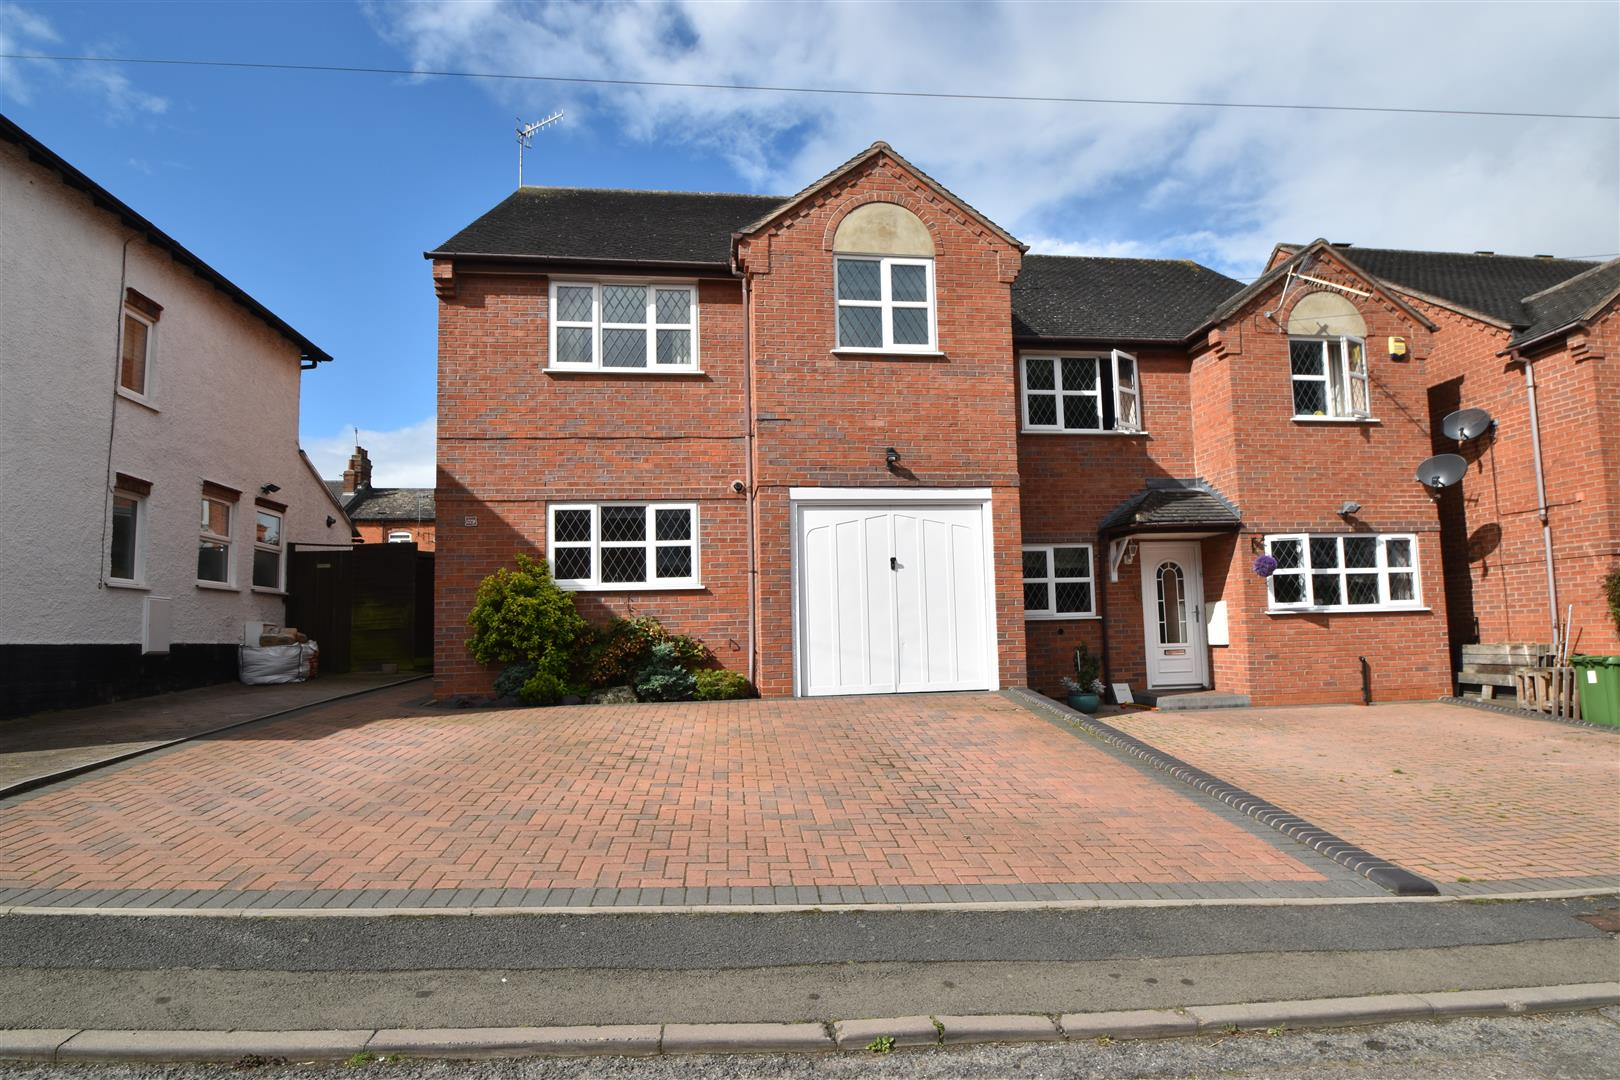 3 Bedrooms Semi Detached House for sale in Miller Street, Droitwich